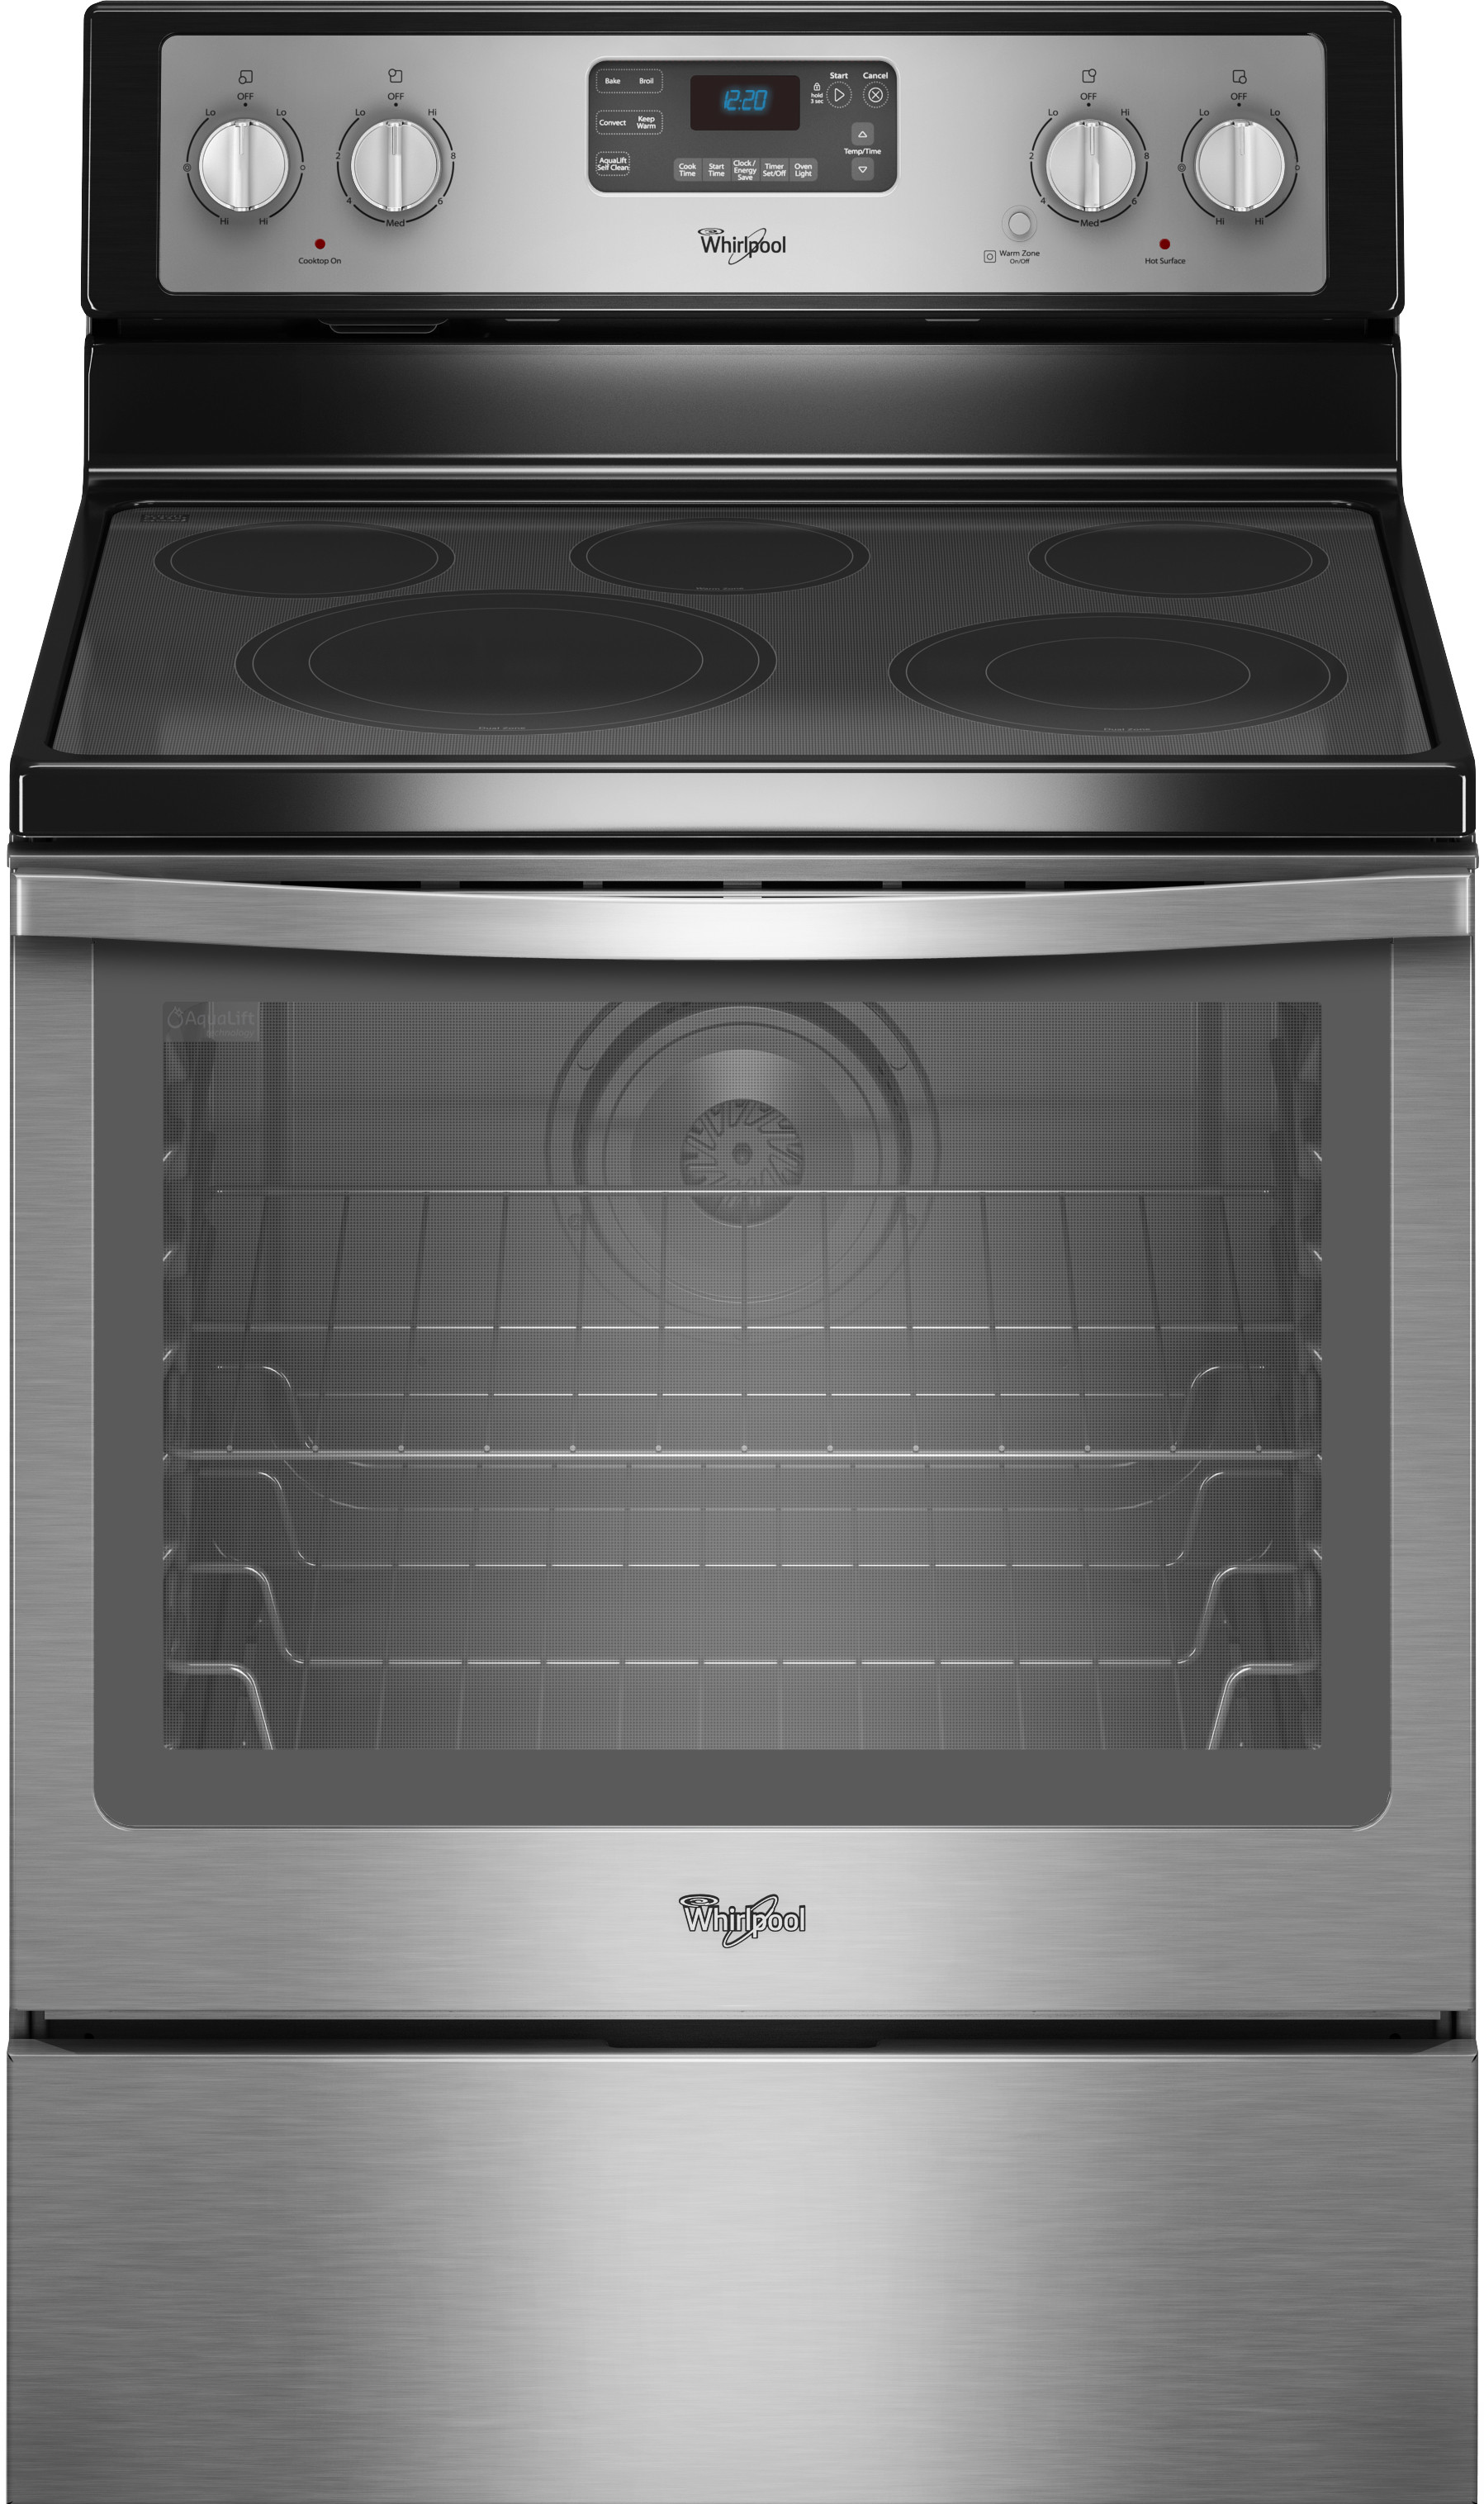 Whirlpool Wfe540h0es 30 Inch Freestanding Electric Range